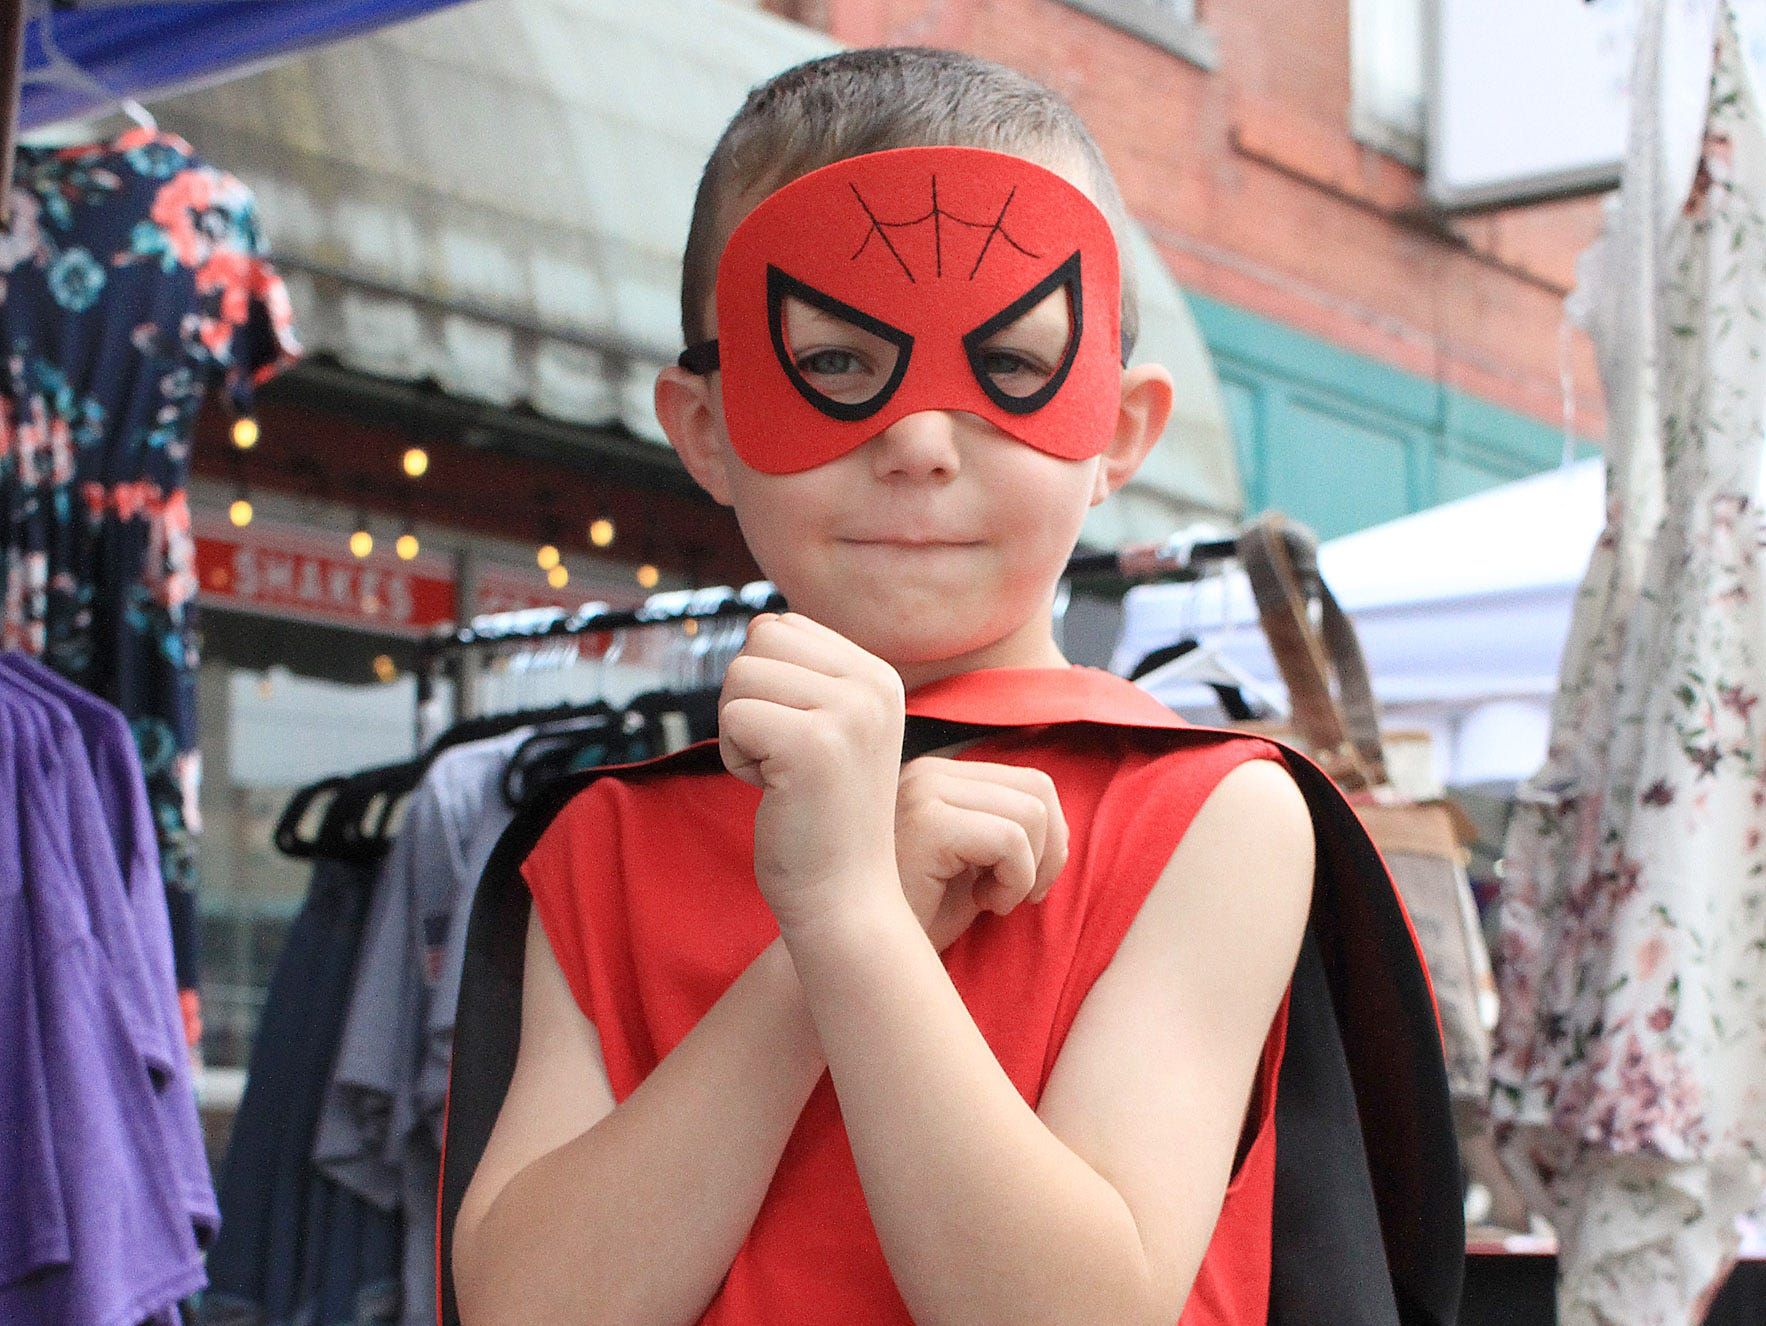 Even Spiderman (McKennon Hodges) showed up at the Fashion Crawl in Gallatin, TN on Saturday, May 11, 2019